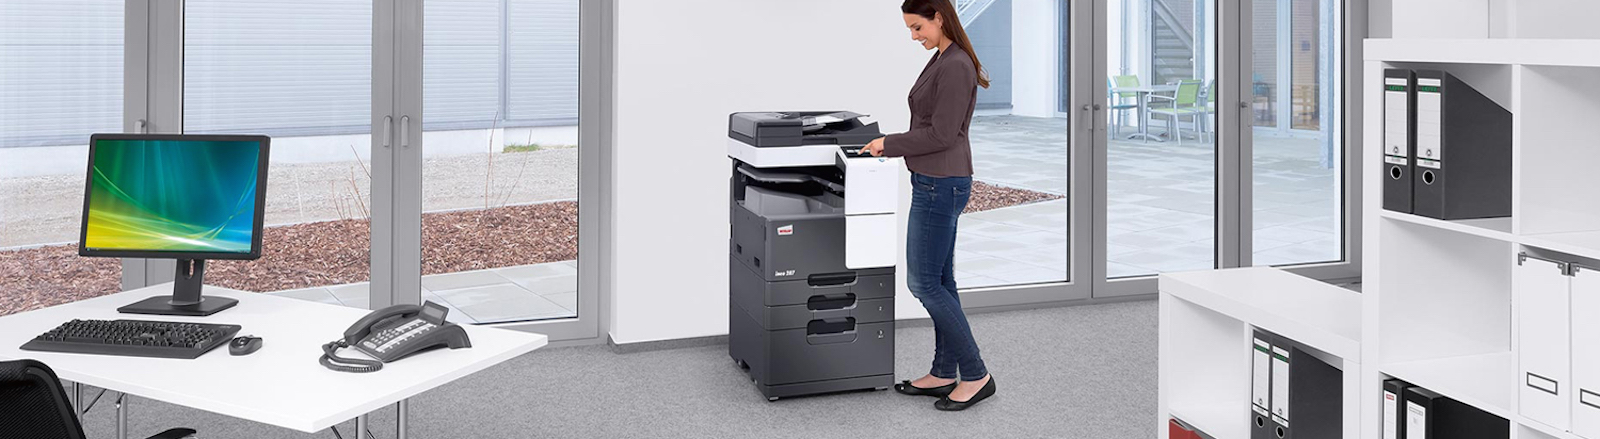 how to use office photocopier